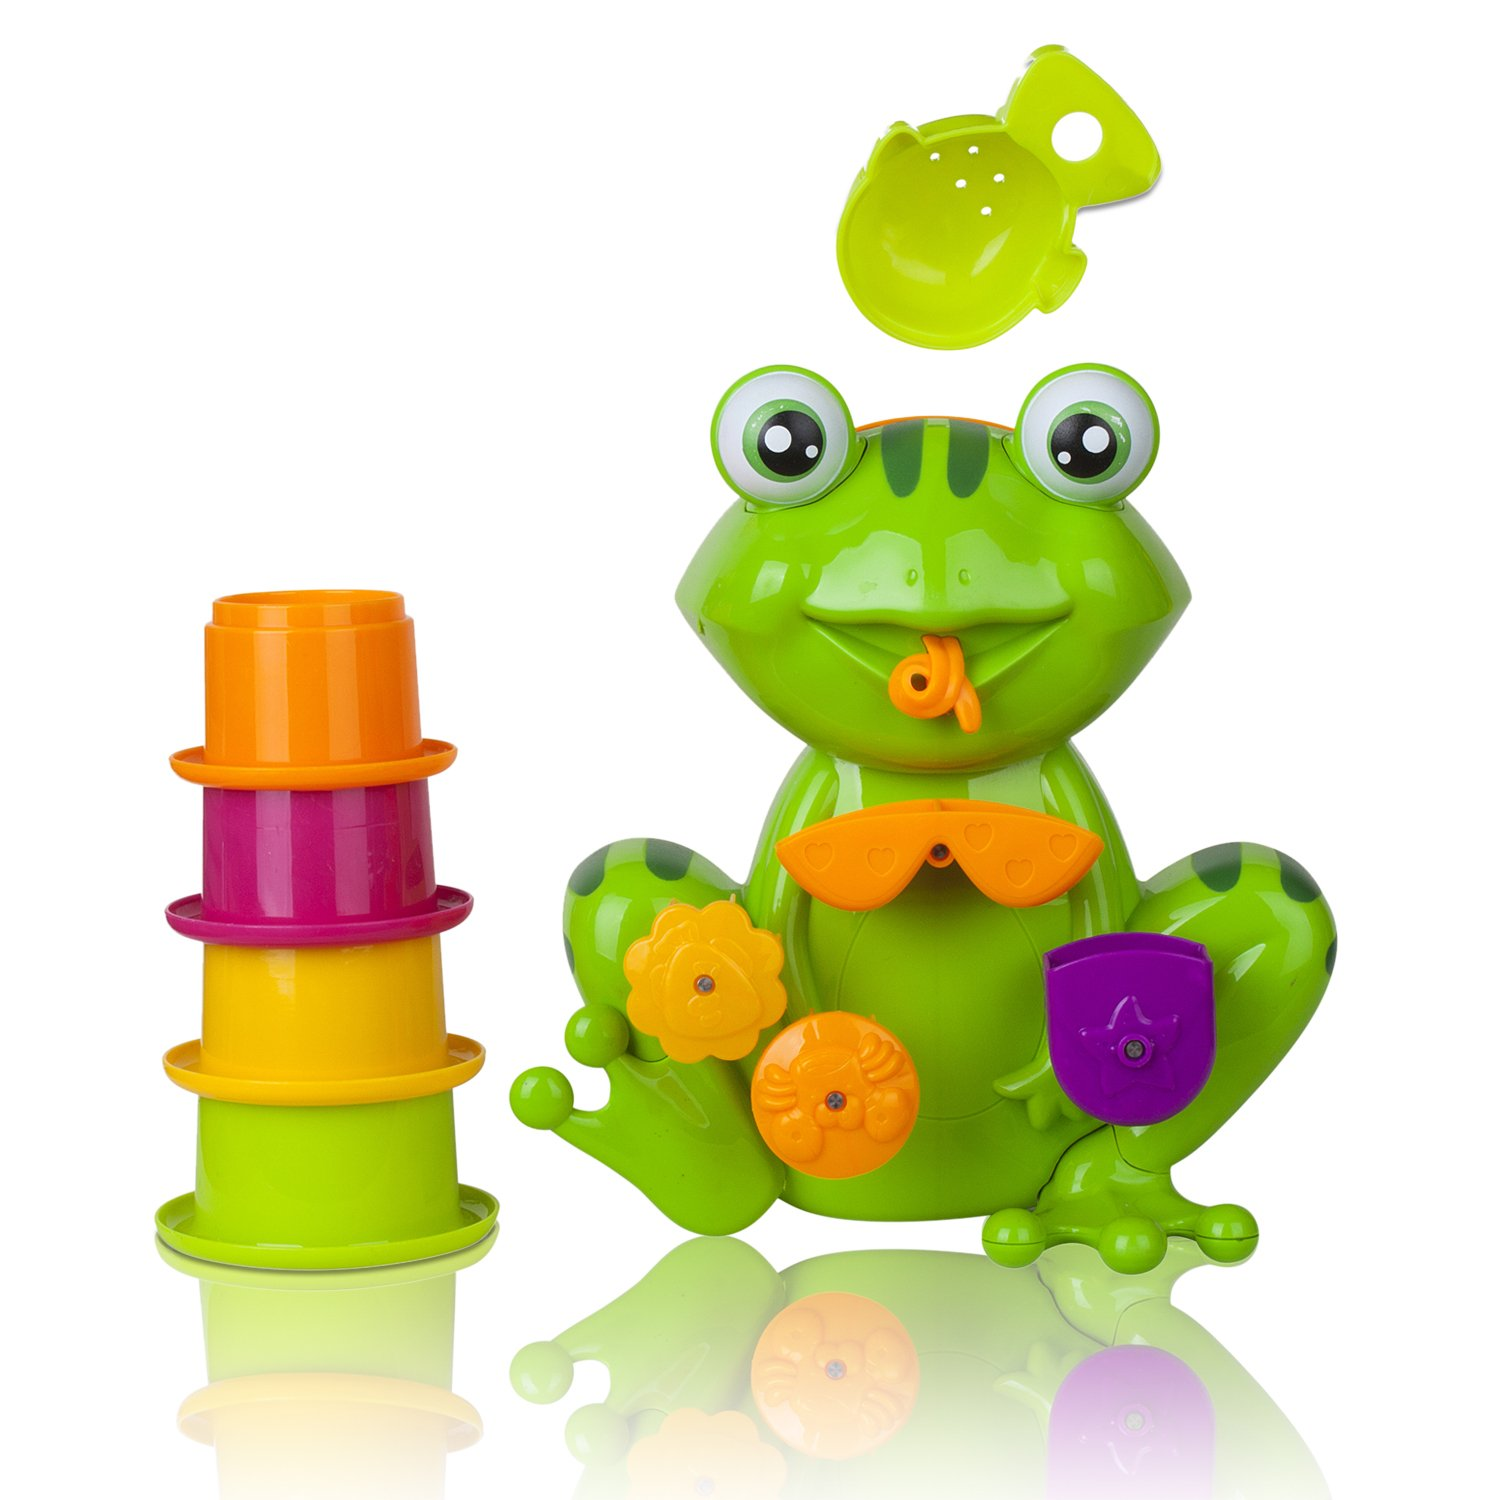 Amazon.com: FUN Interactive Frog Bath Toy for Toddlers - For Girls ...